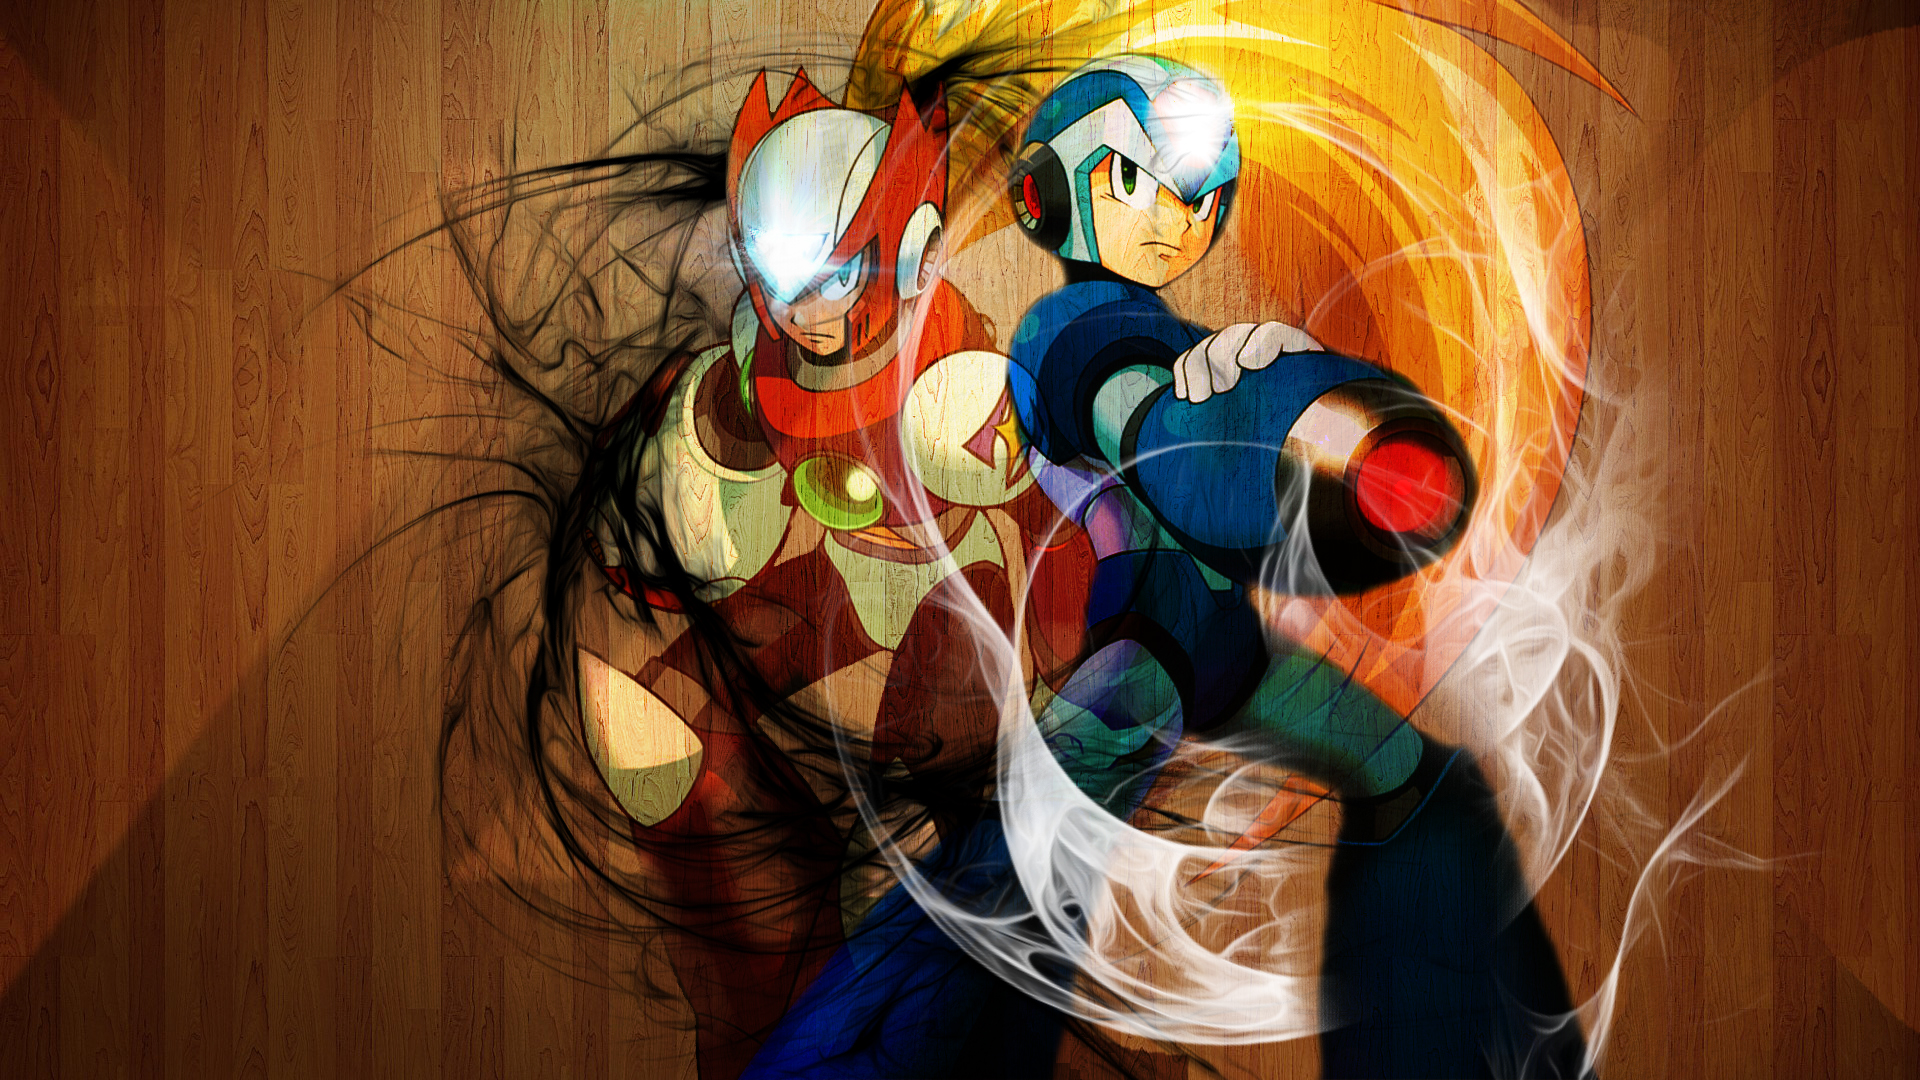 Megaman X By Anzero2 On Deviantart